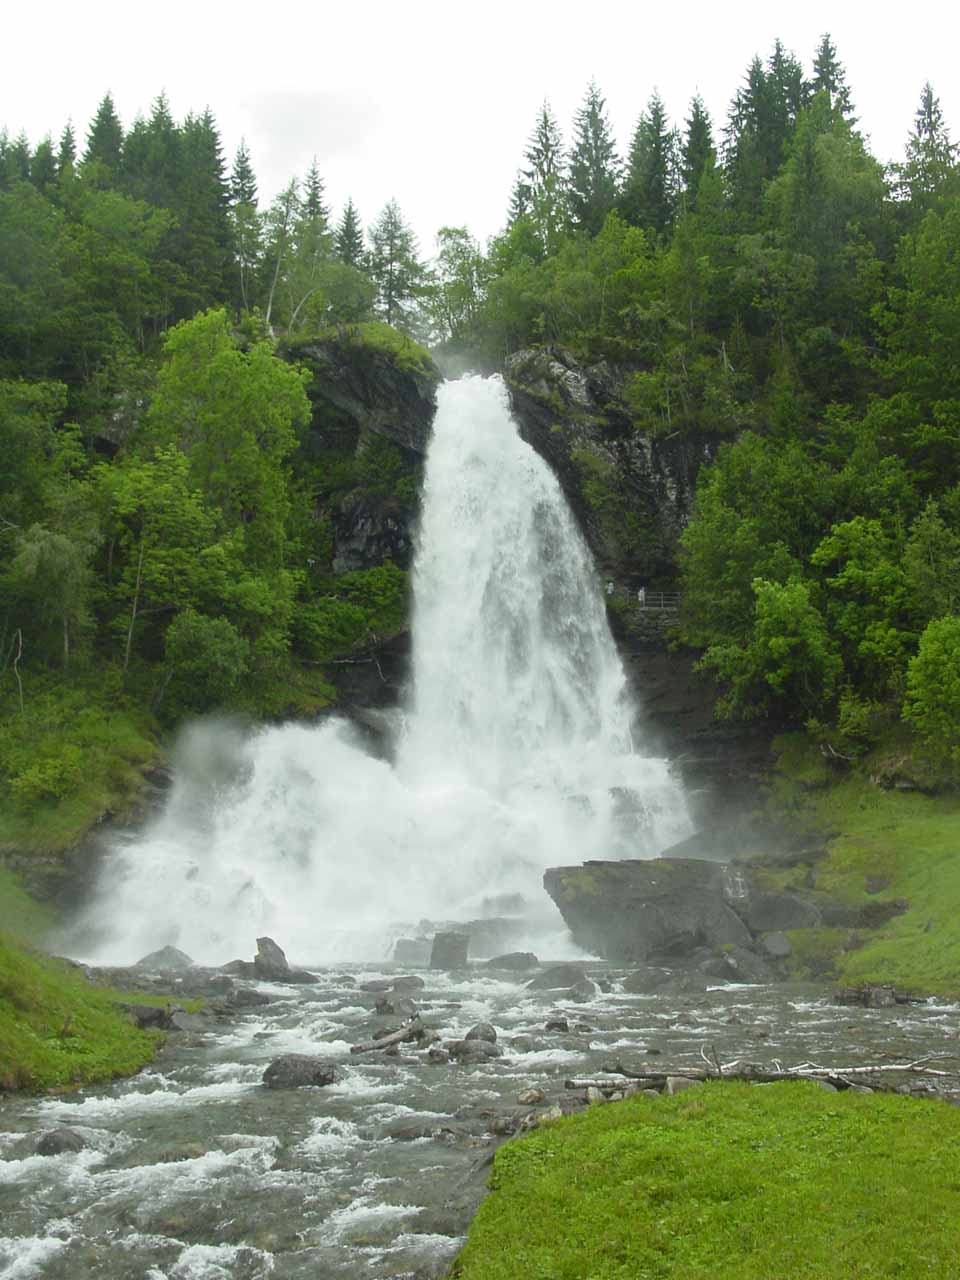 We then walked more towards the bridge for this more frontal view of Steinsdalsfossen